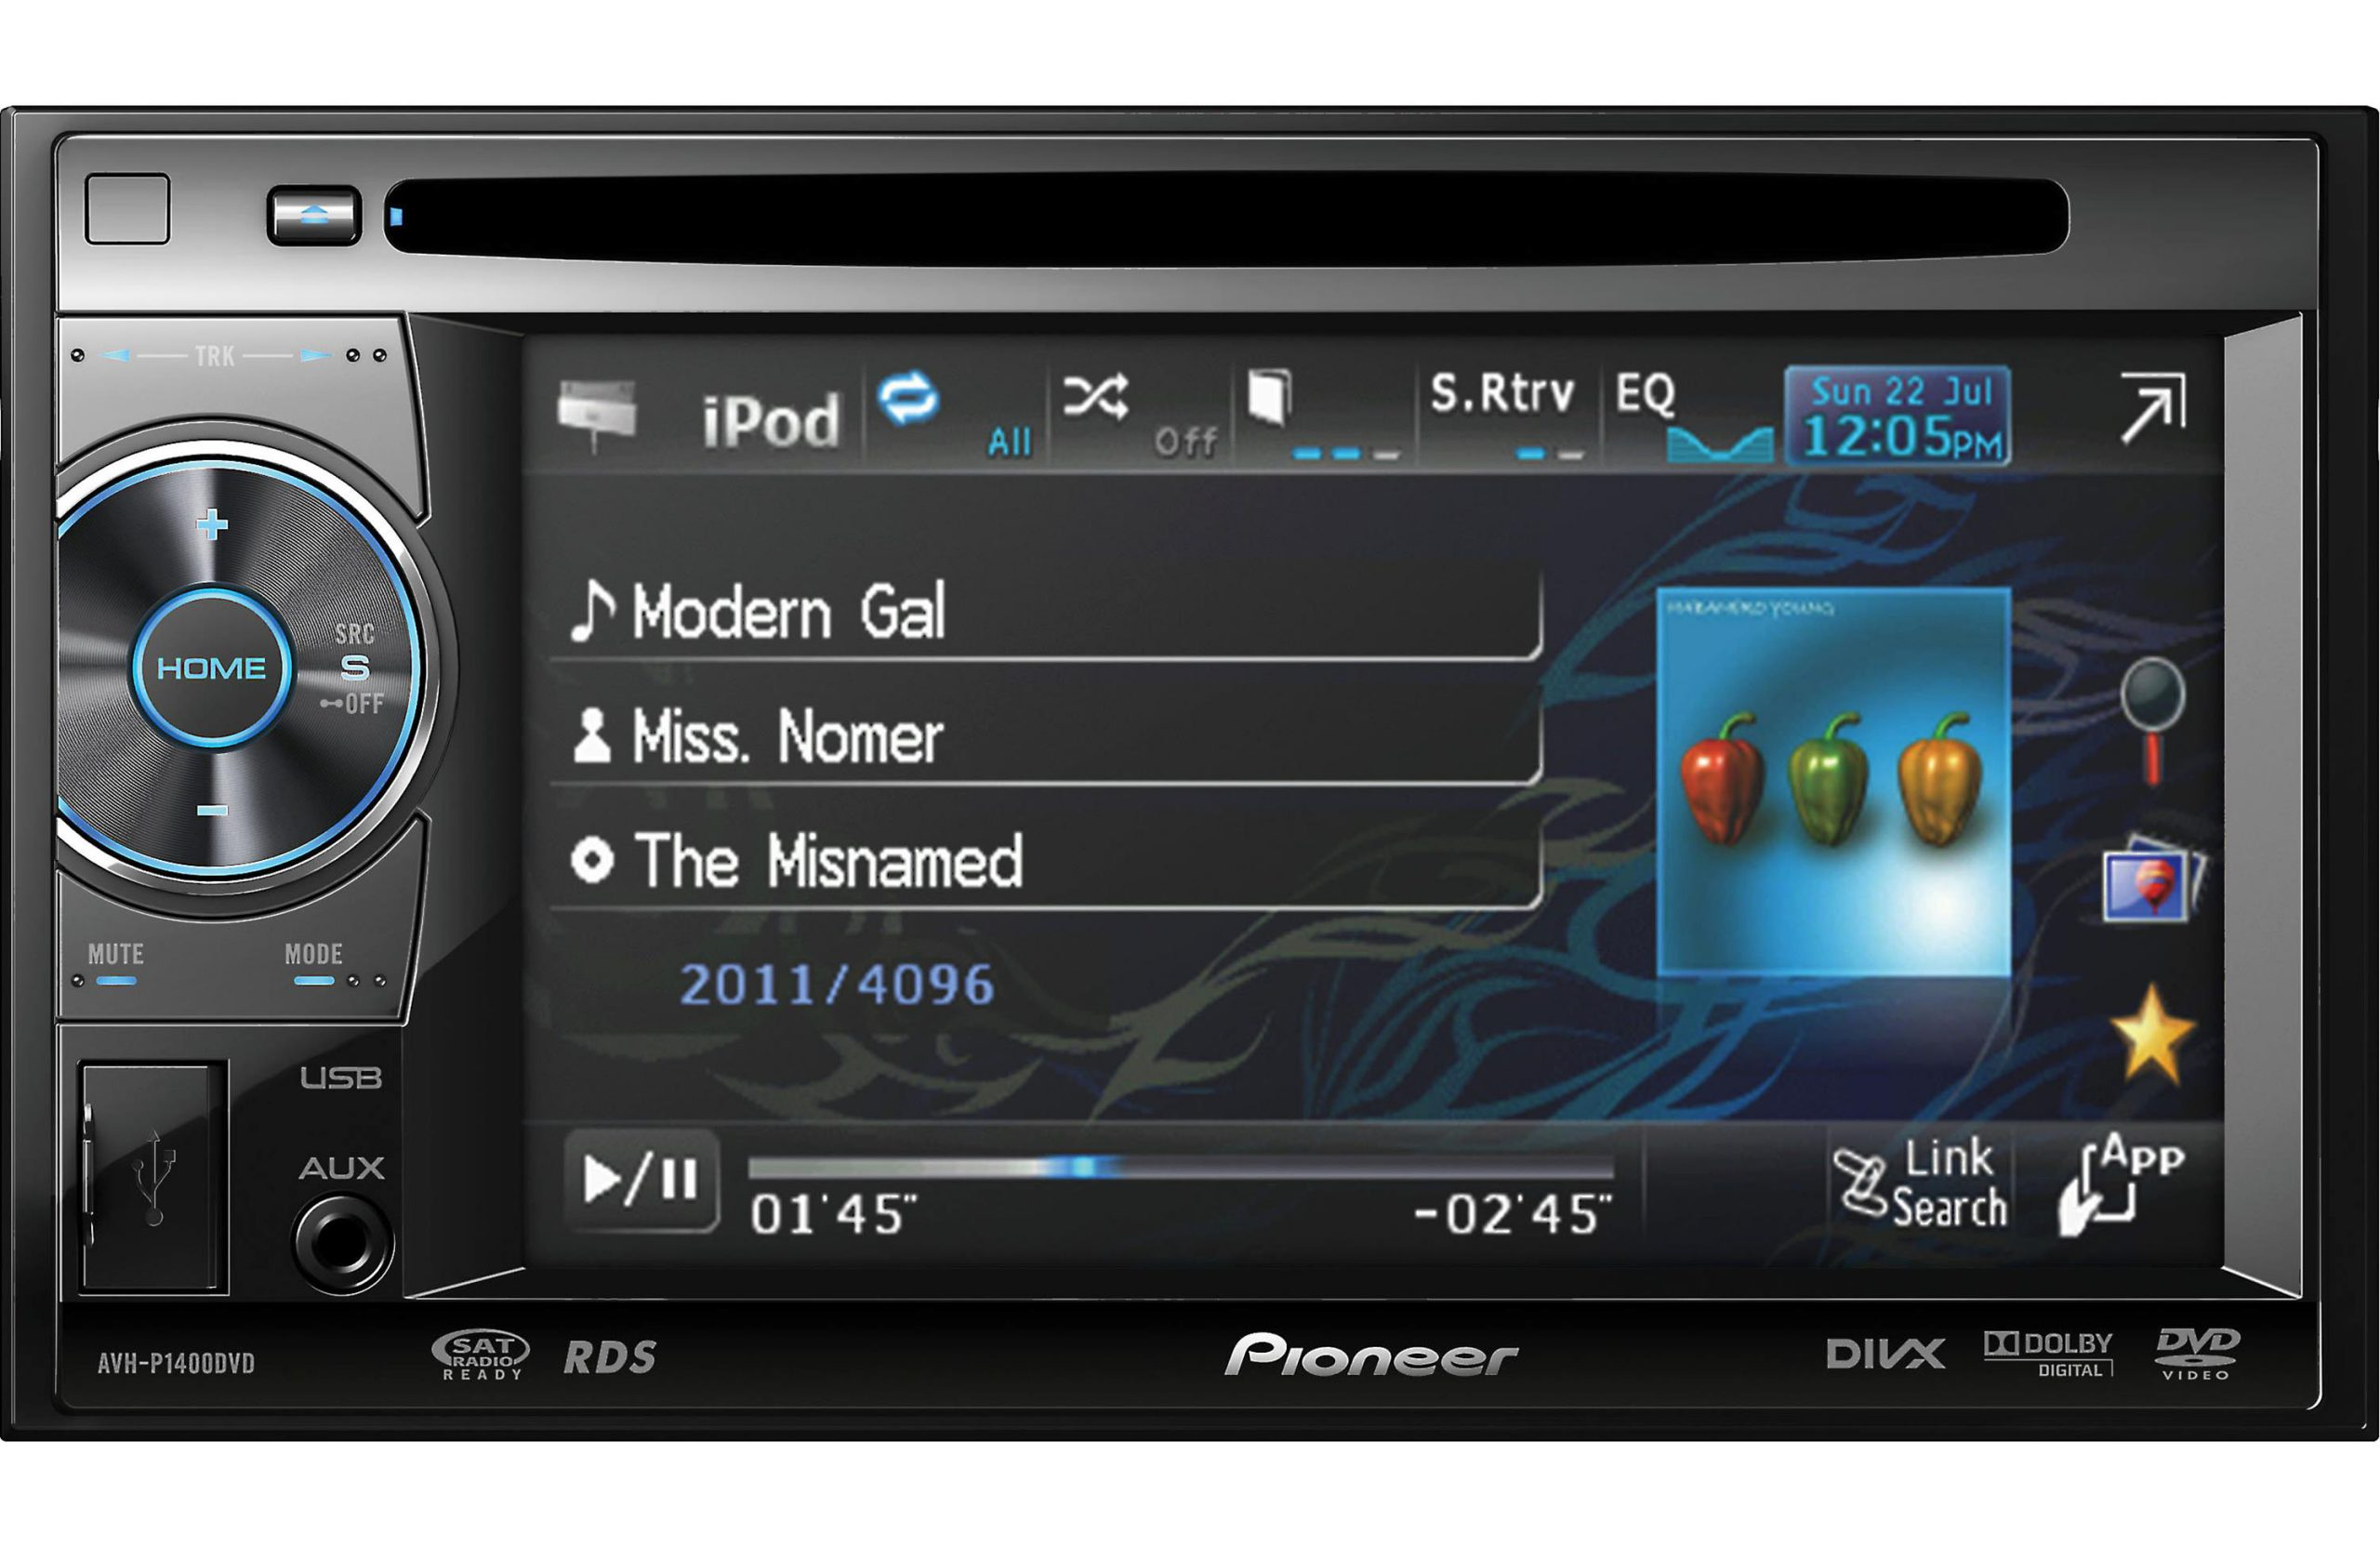 Pioneer AVH-P1400DVD Review